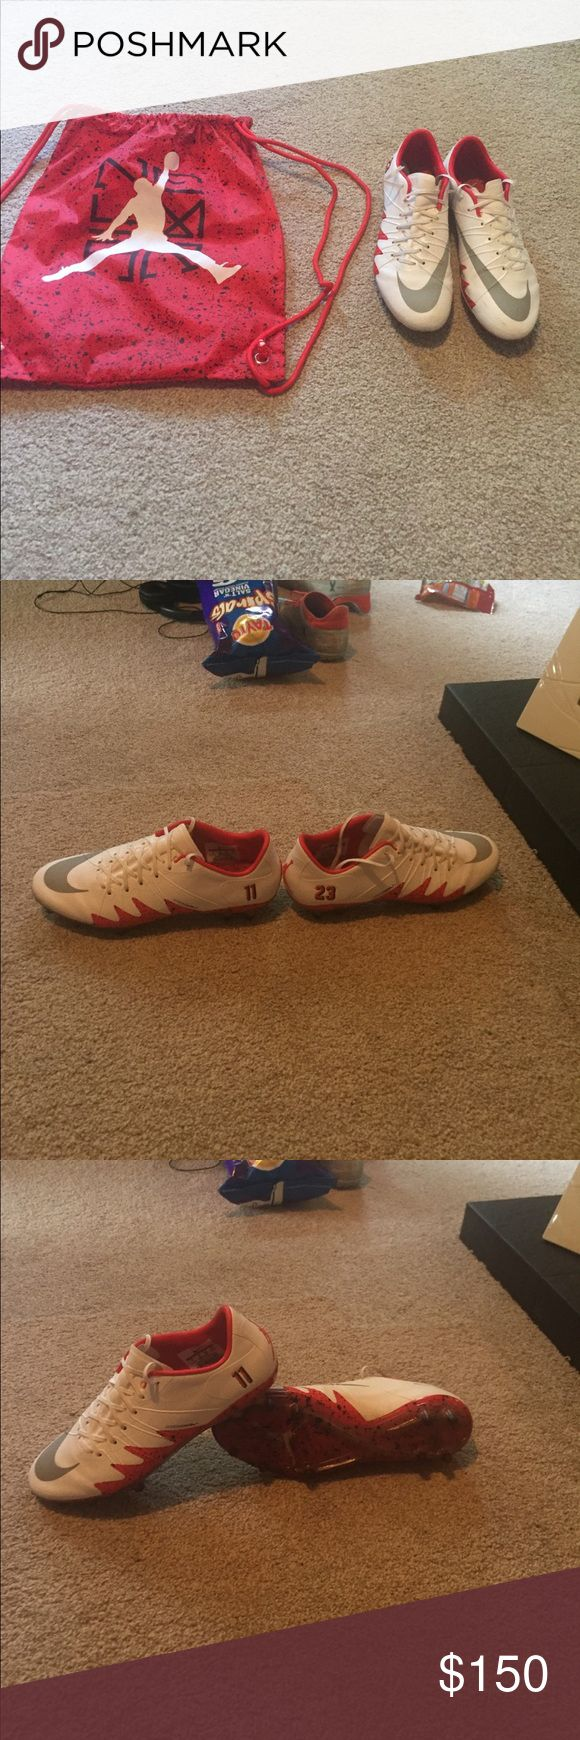 Size 7 Nike hypervenom Neymar x jordan cleats Worn once. Great condition. Nike Shoes Athletic Shoes